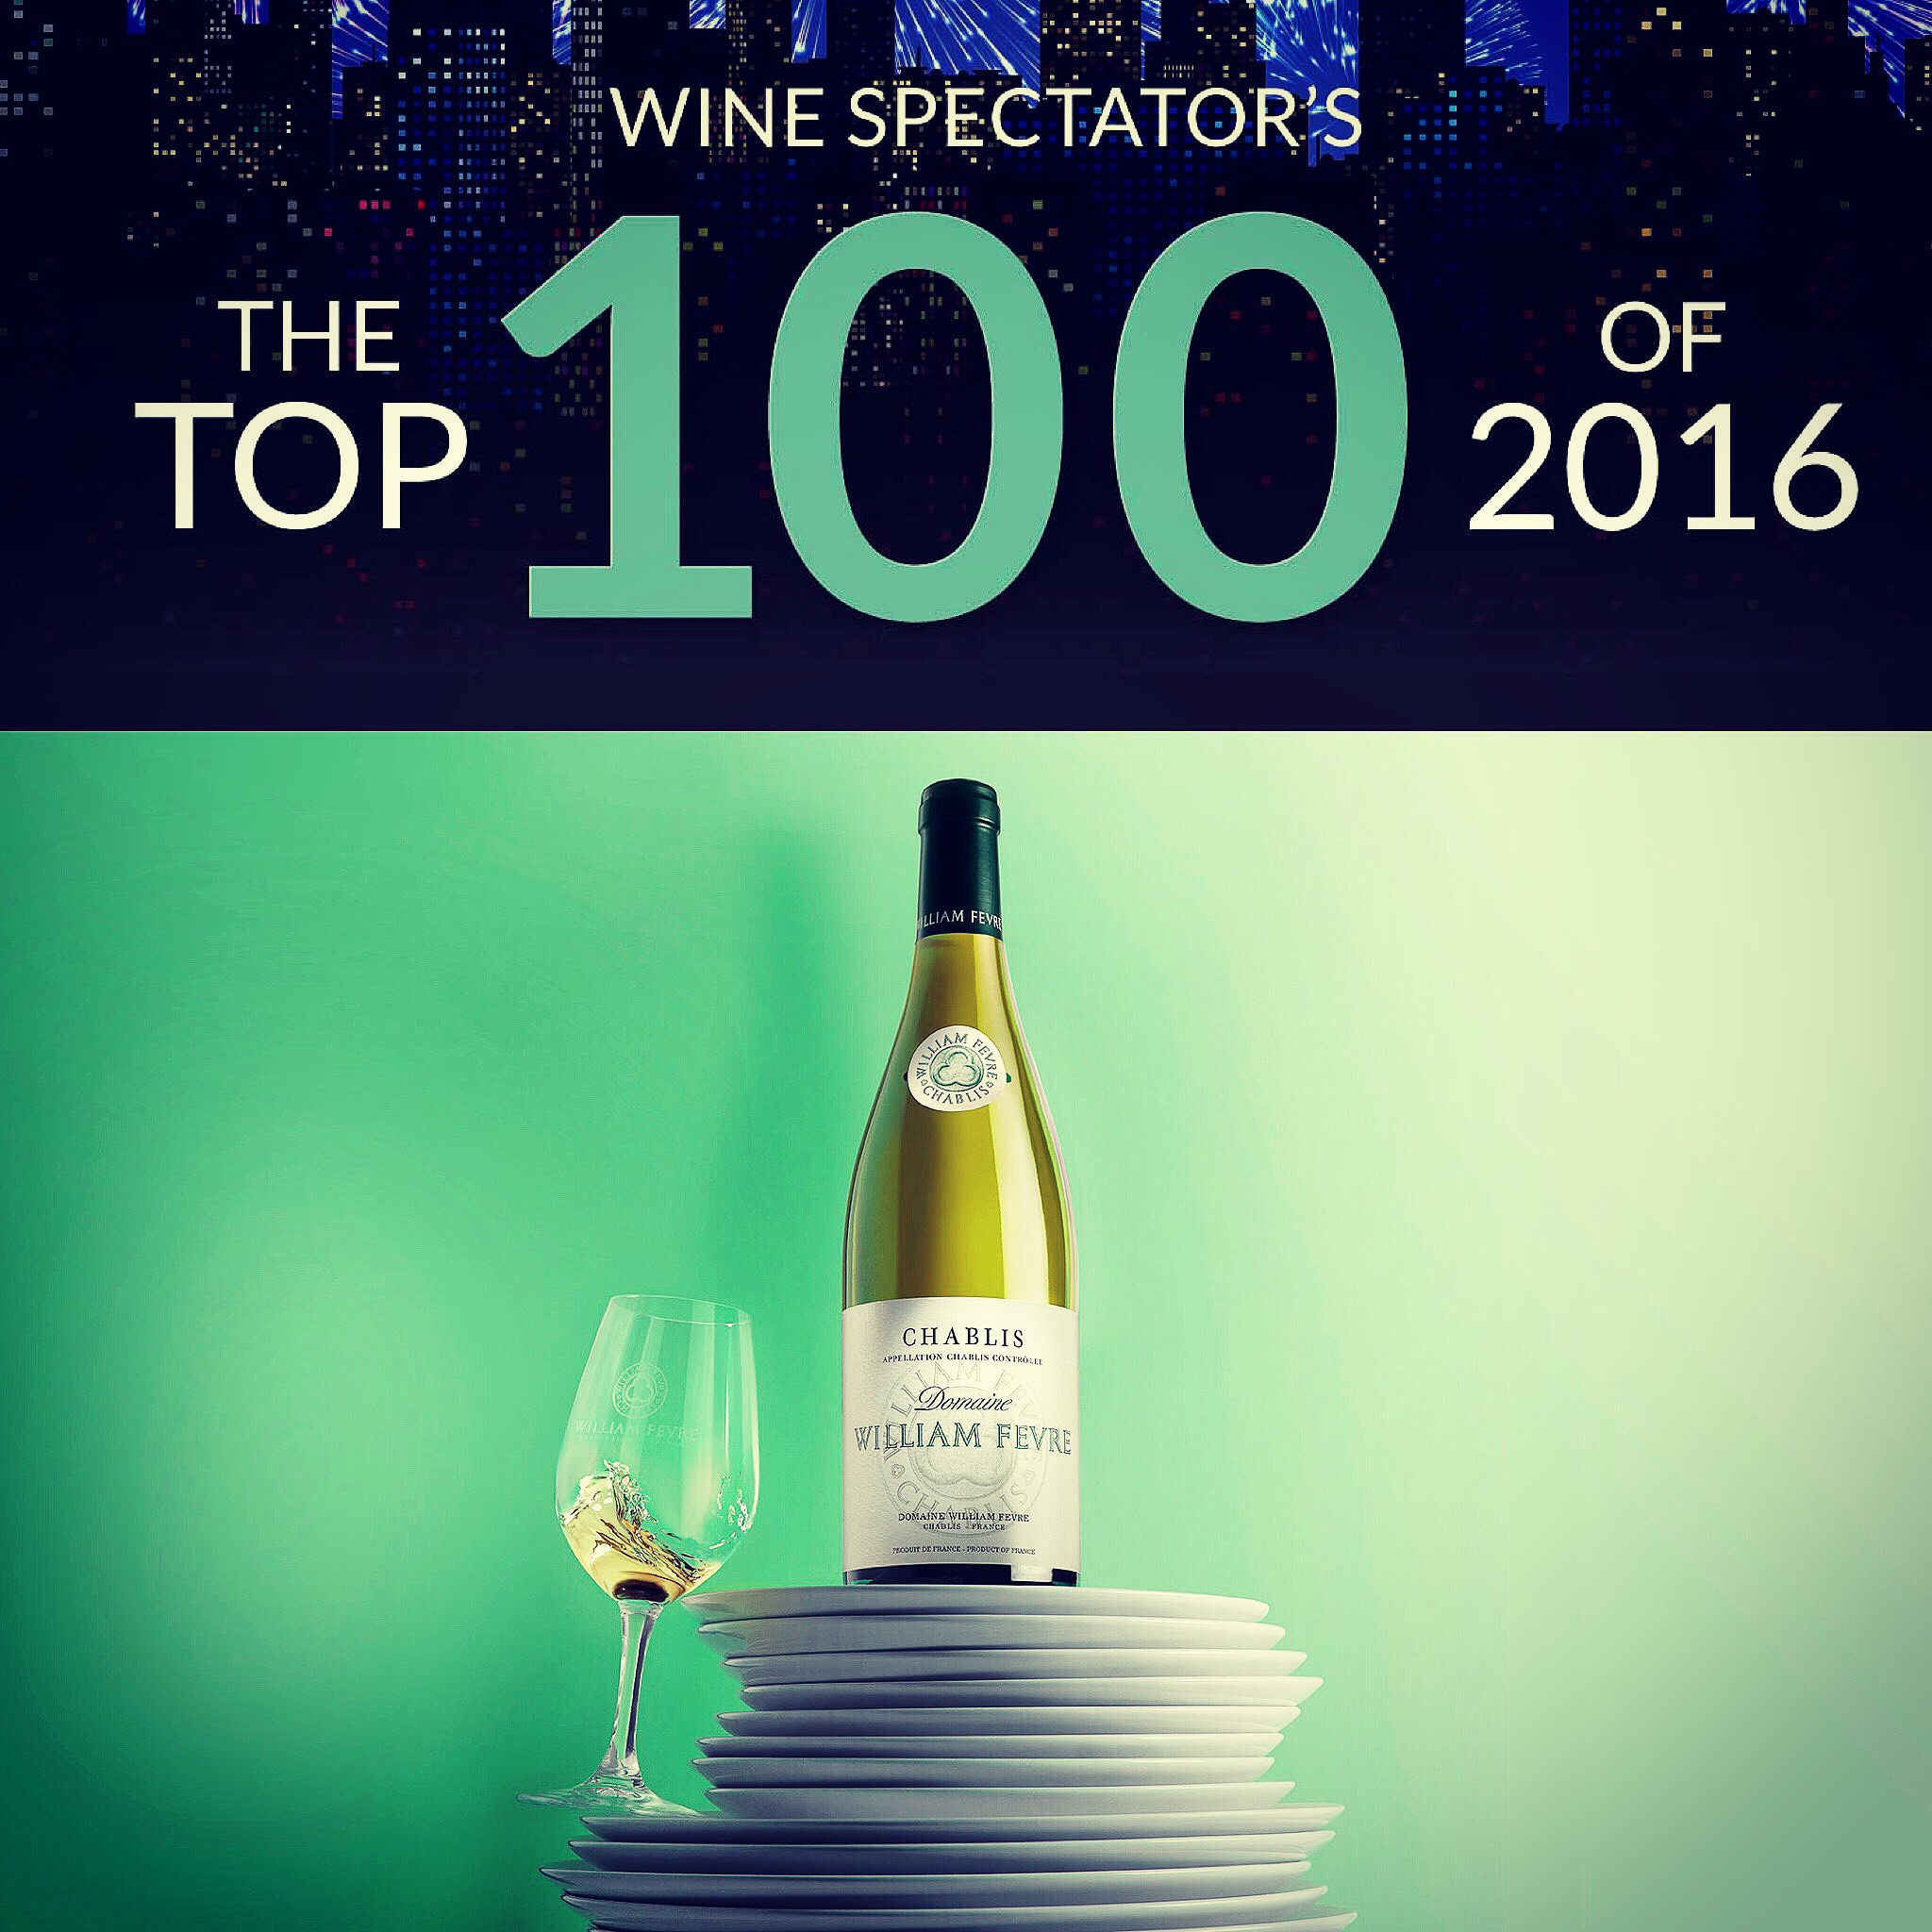 Our Chablis Domaine 2014 among Wine Spectator's TOP 100 wines !